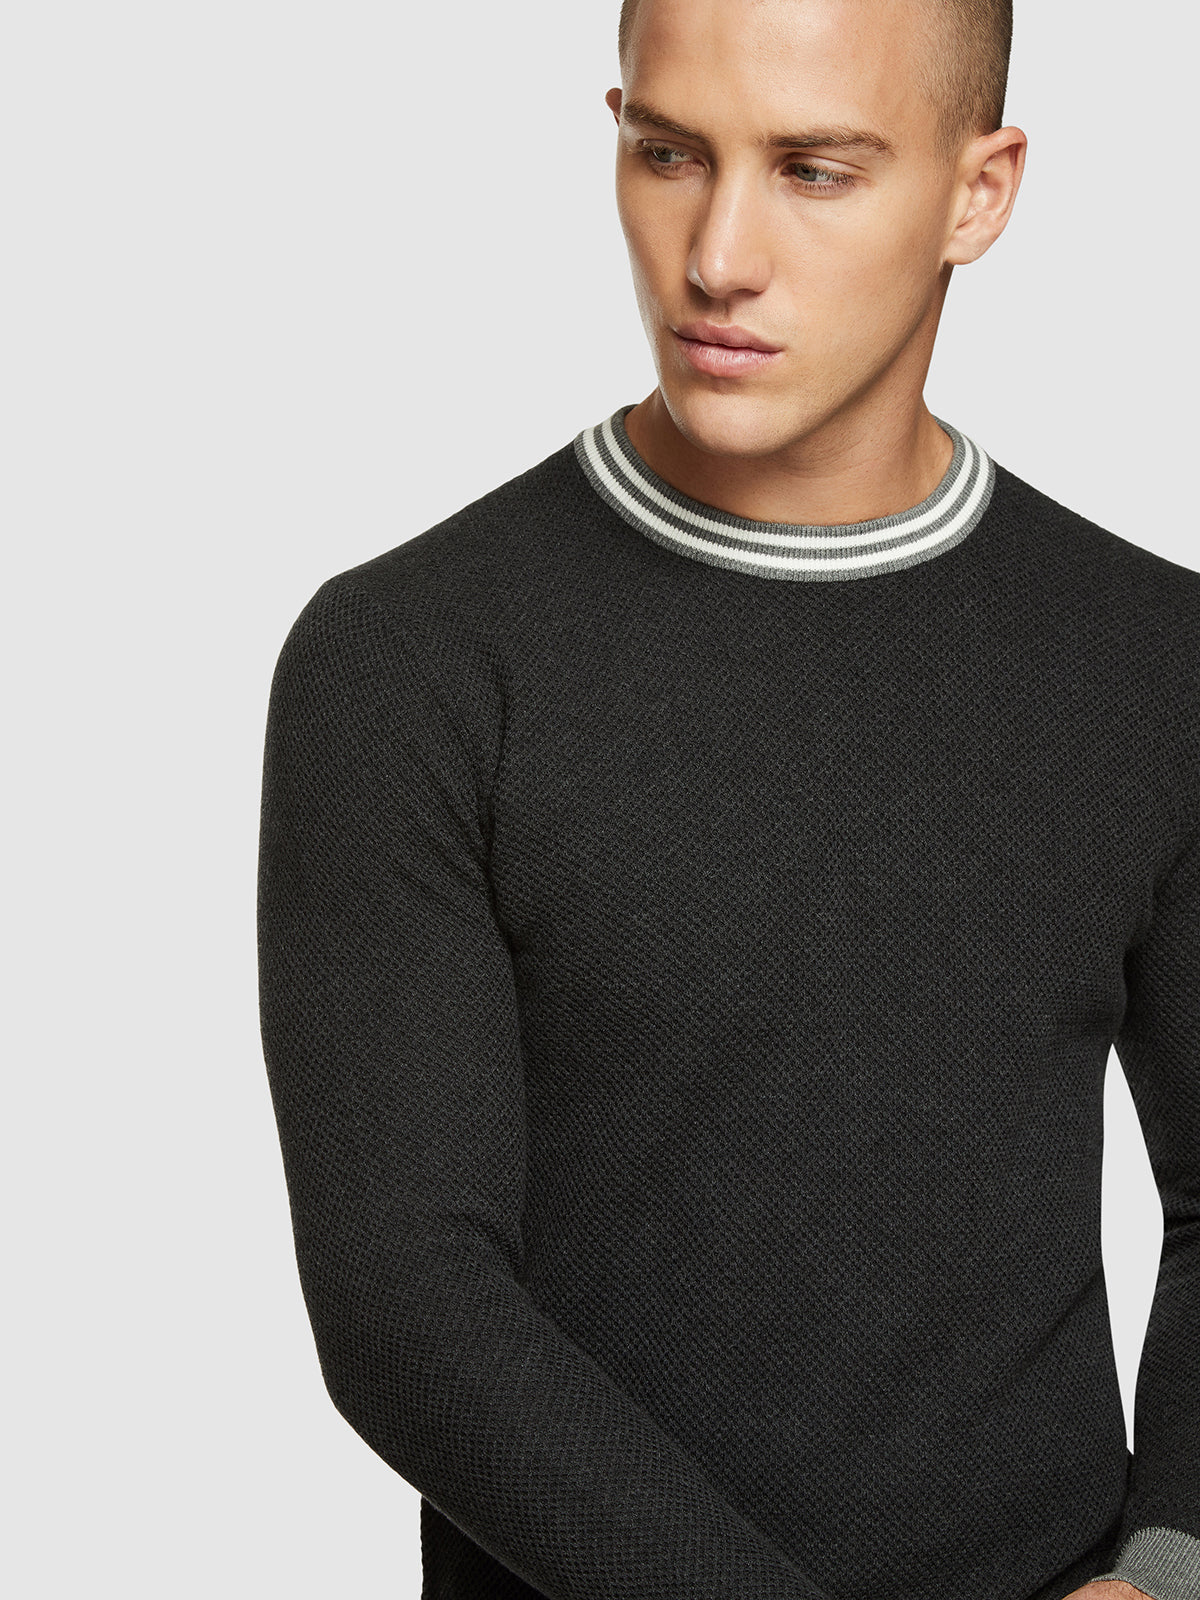 FRED CREW NECK TEXTURED PULLOVER